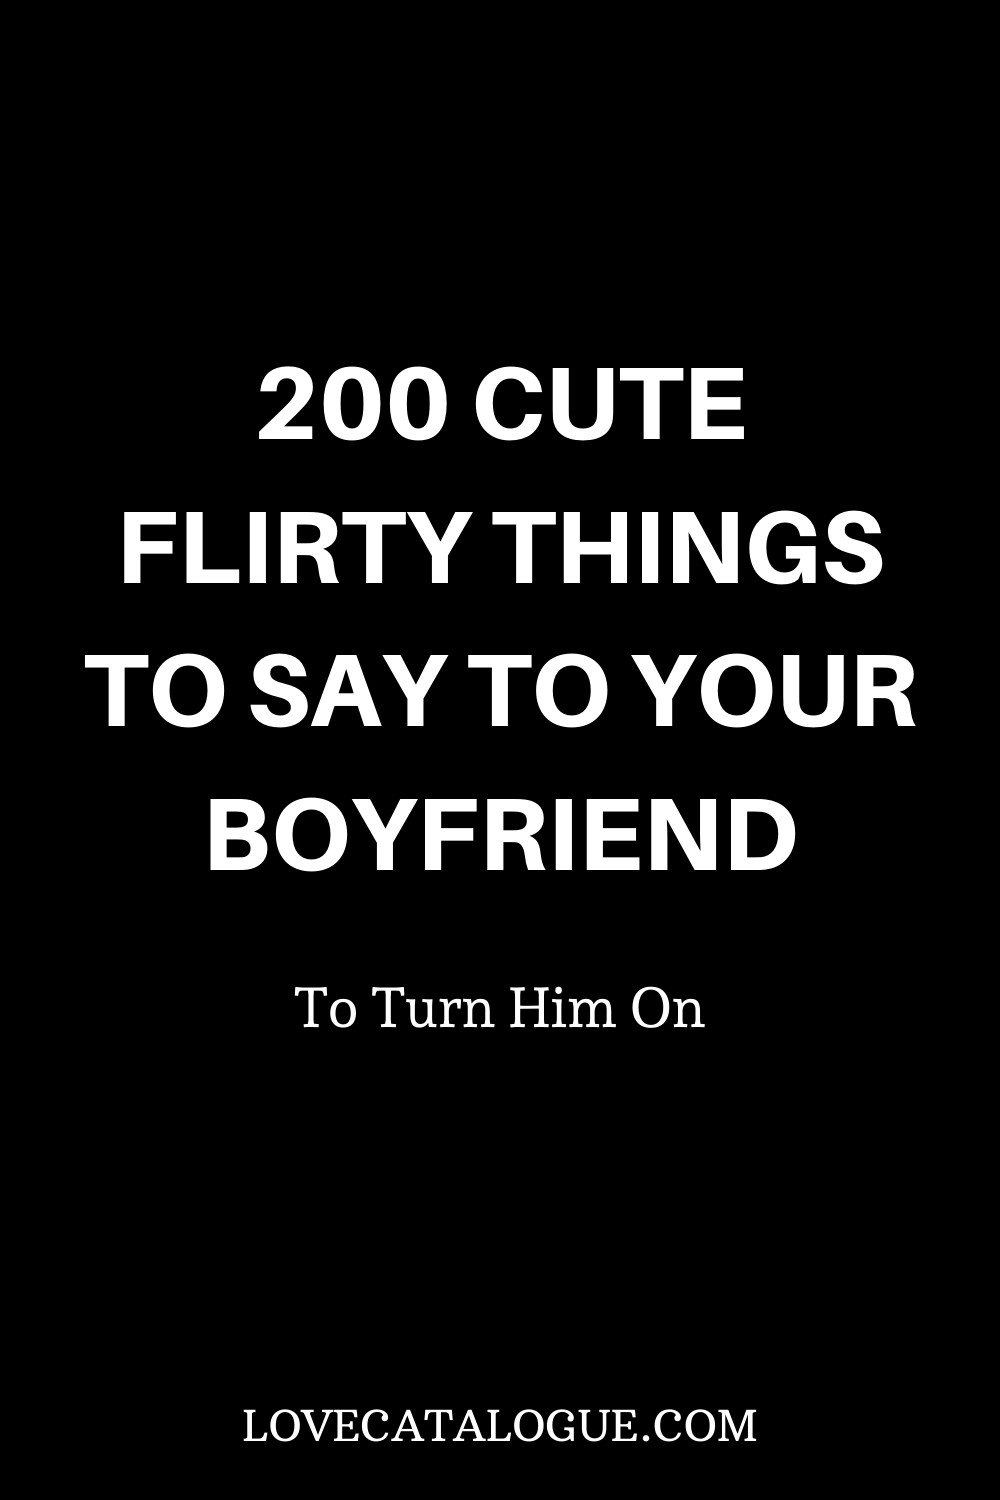 Man things to him a turn on text to How to